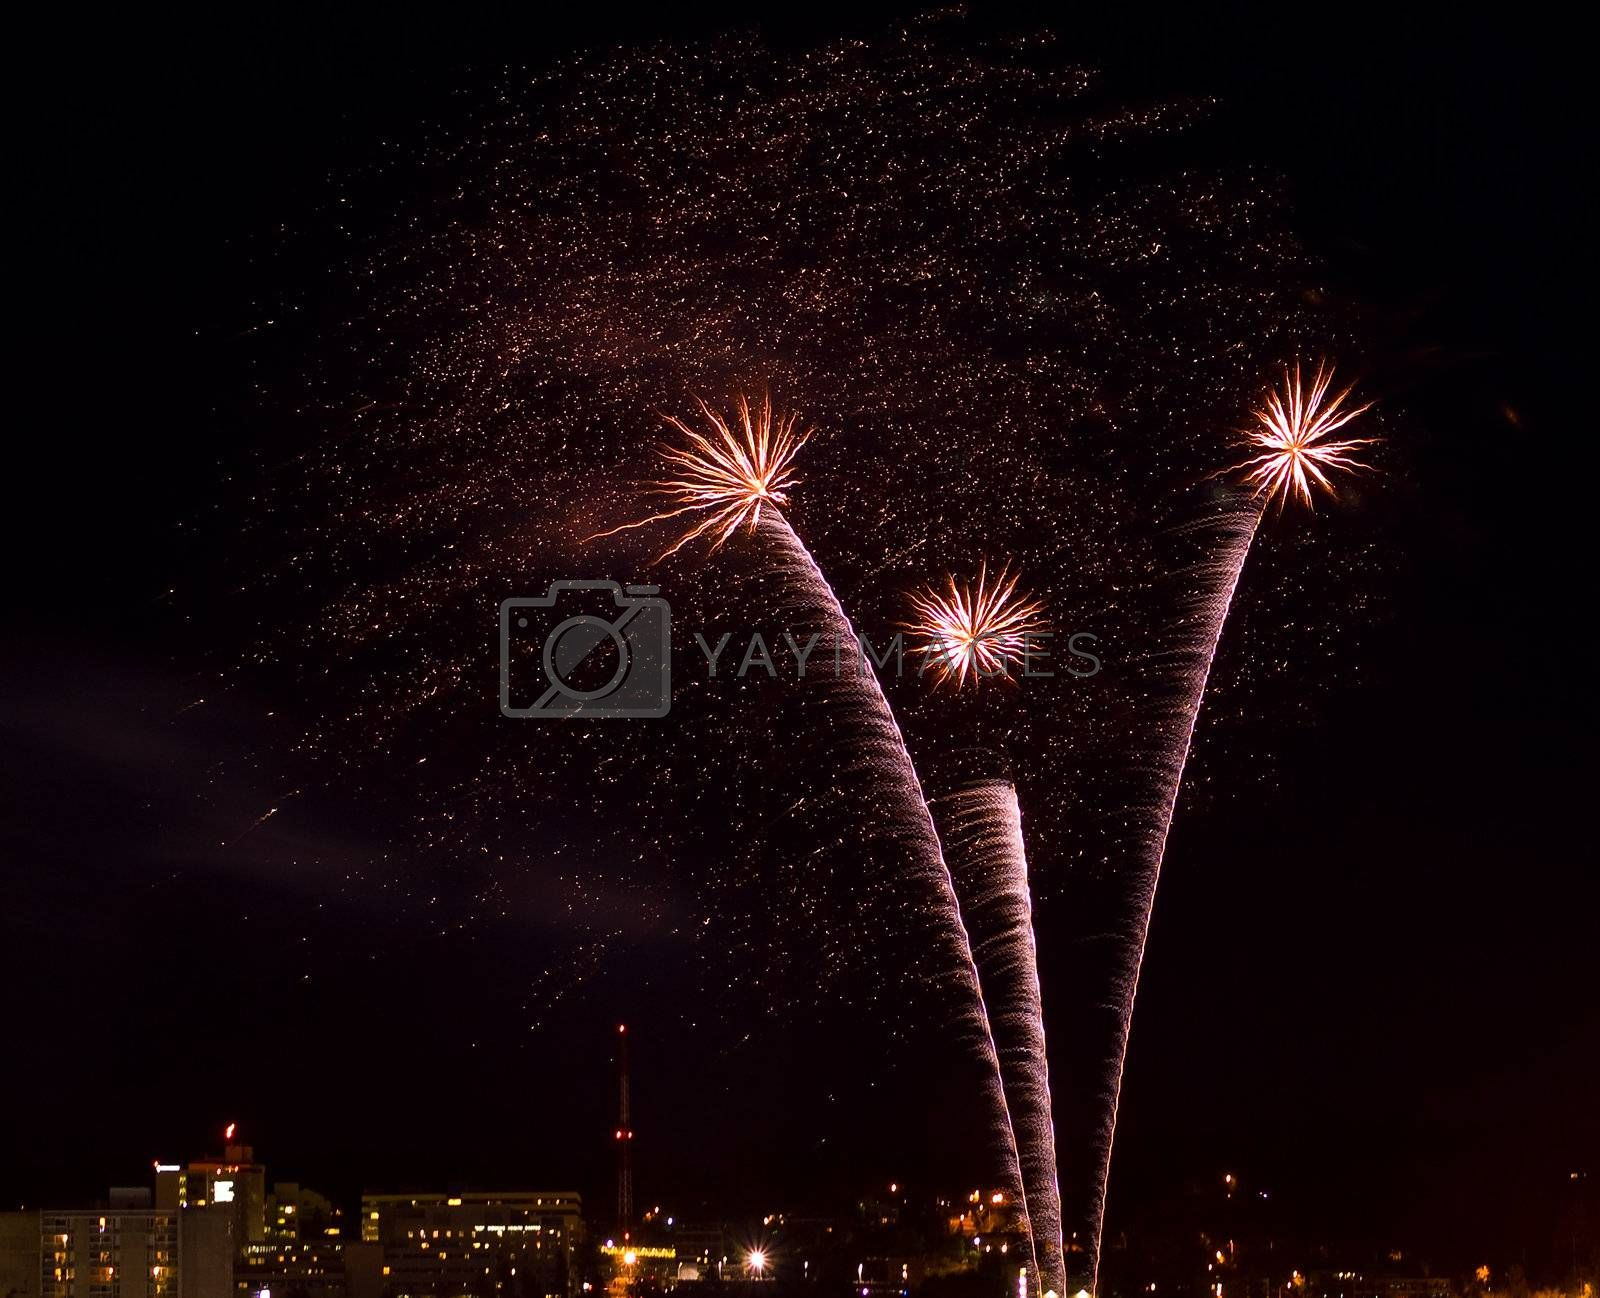 Fireworks Against the Night Sky of a Cityscape